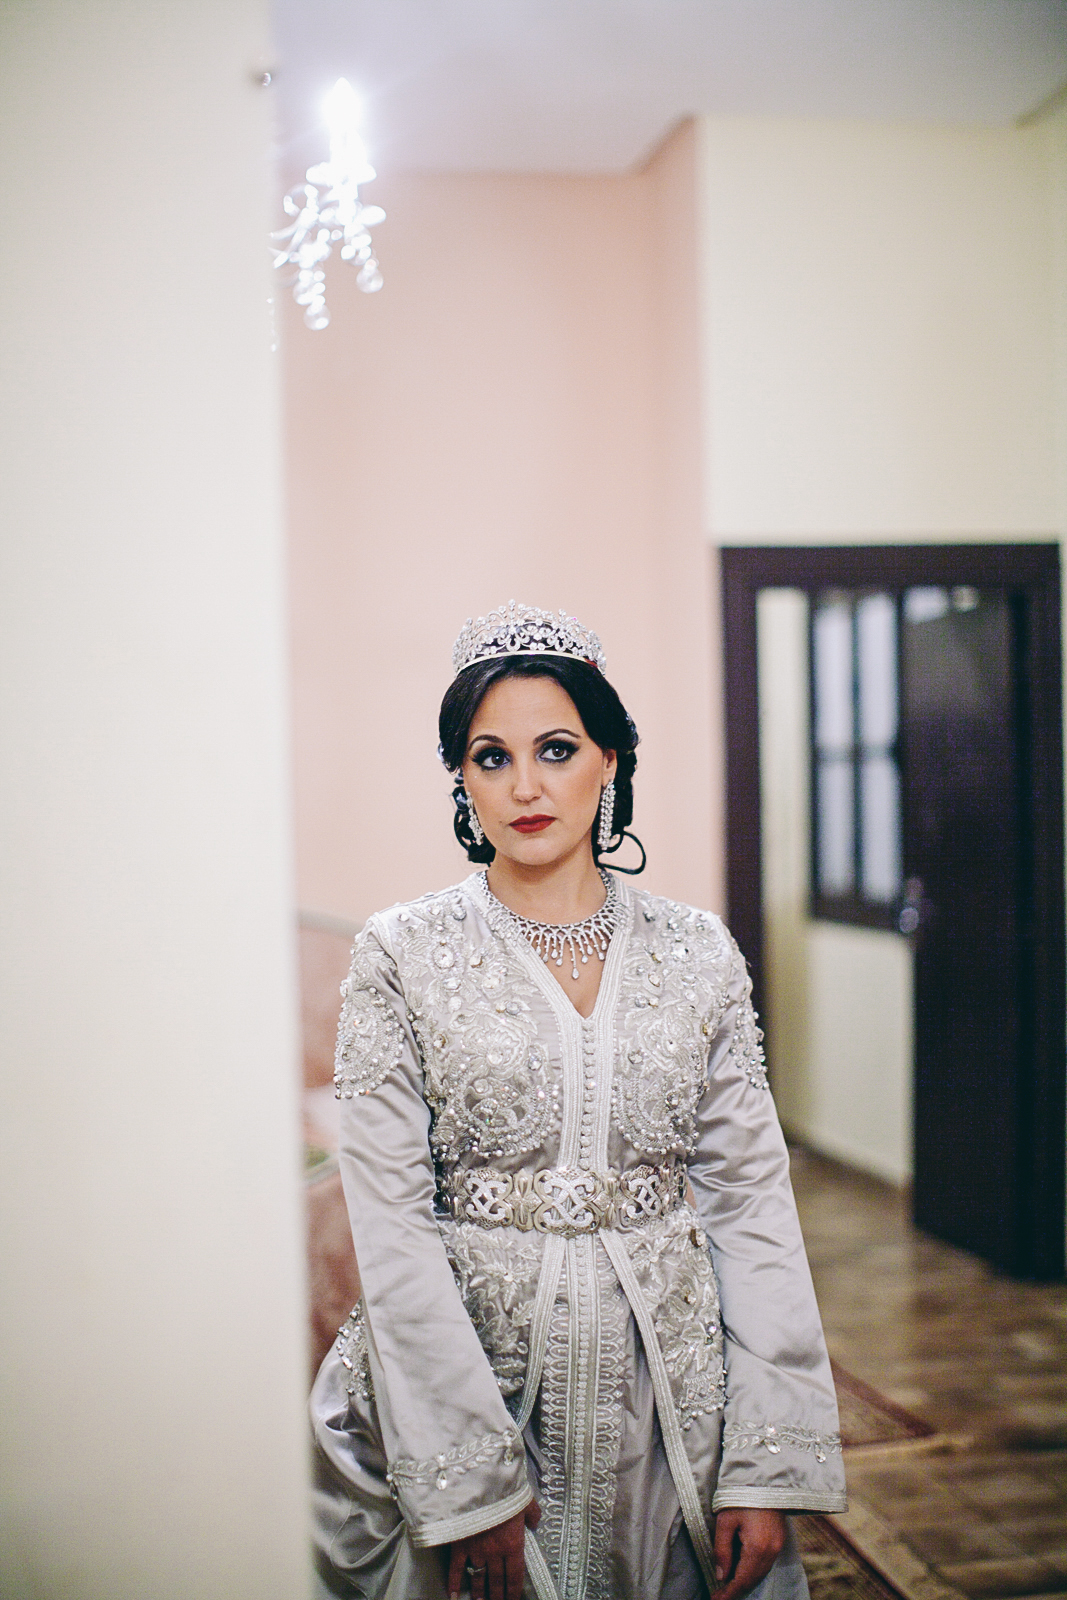 traditional_moroccan_wedding_photographry_casablanca_morocco_houda_vivek_ebony_siovhan_bokeh_photography_042.jpg